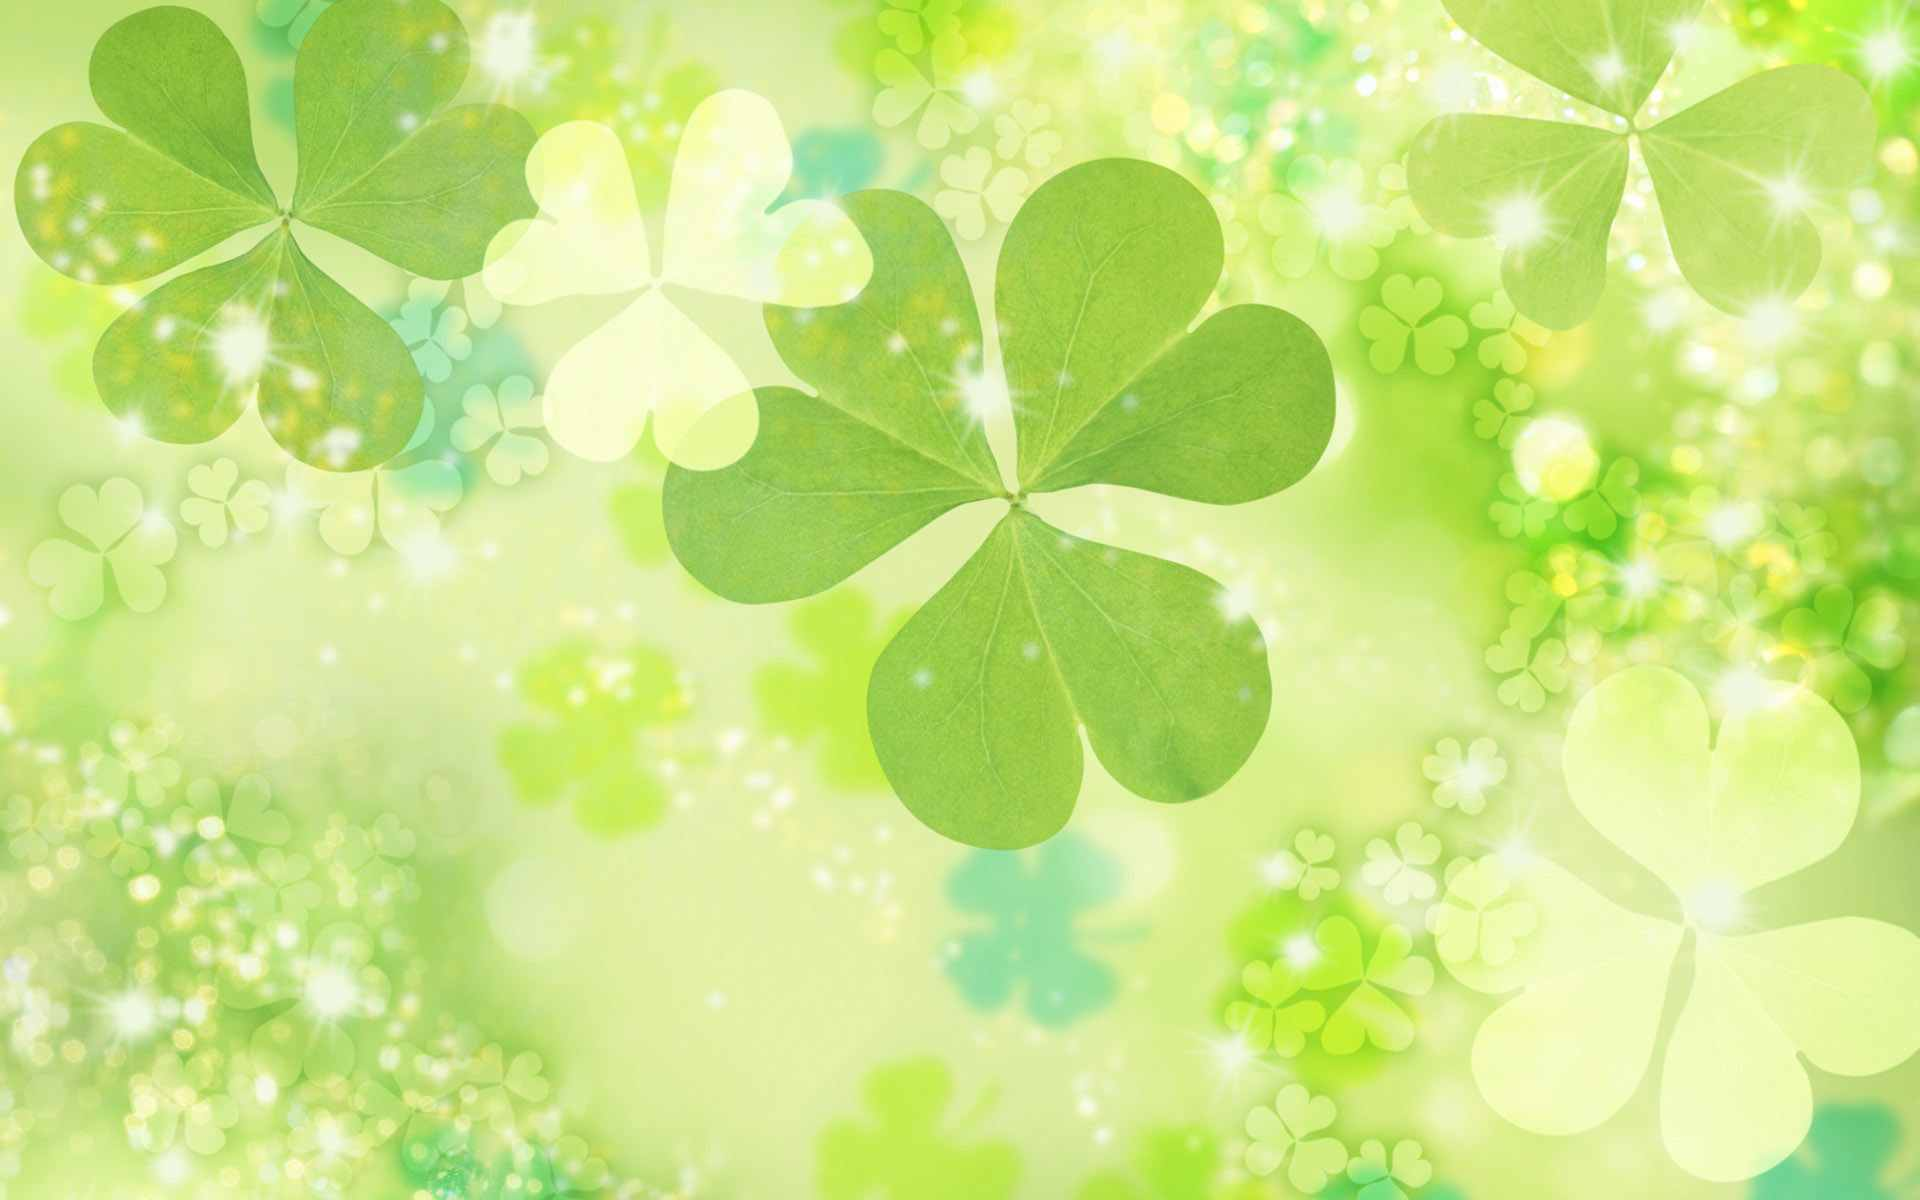 11 St Patricks Day Wallpapers Youre Gonna Love 1920x1200